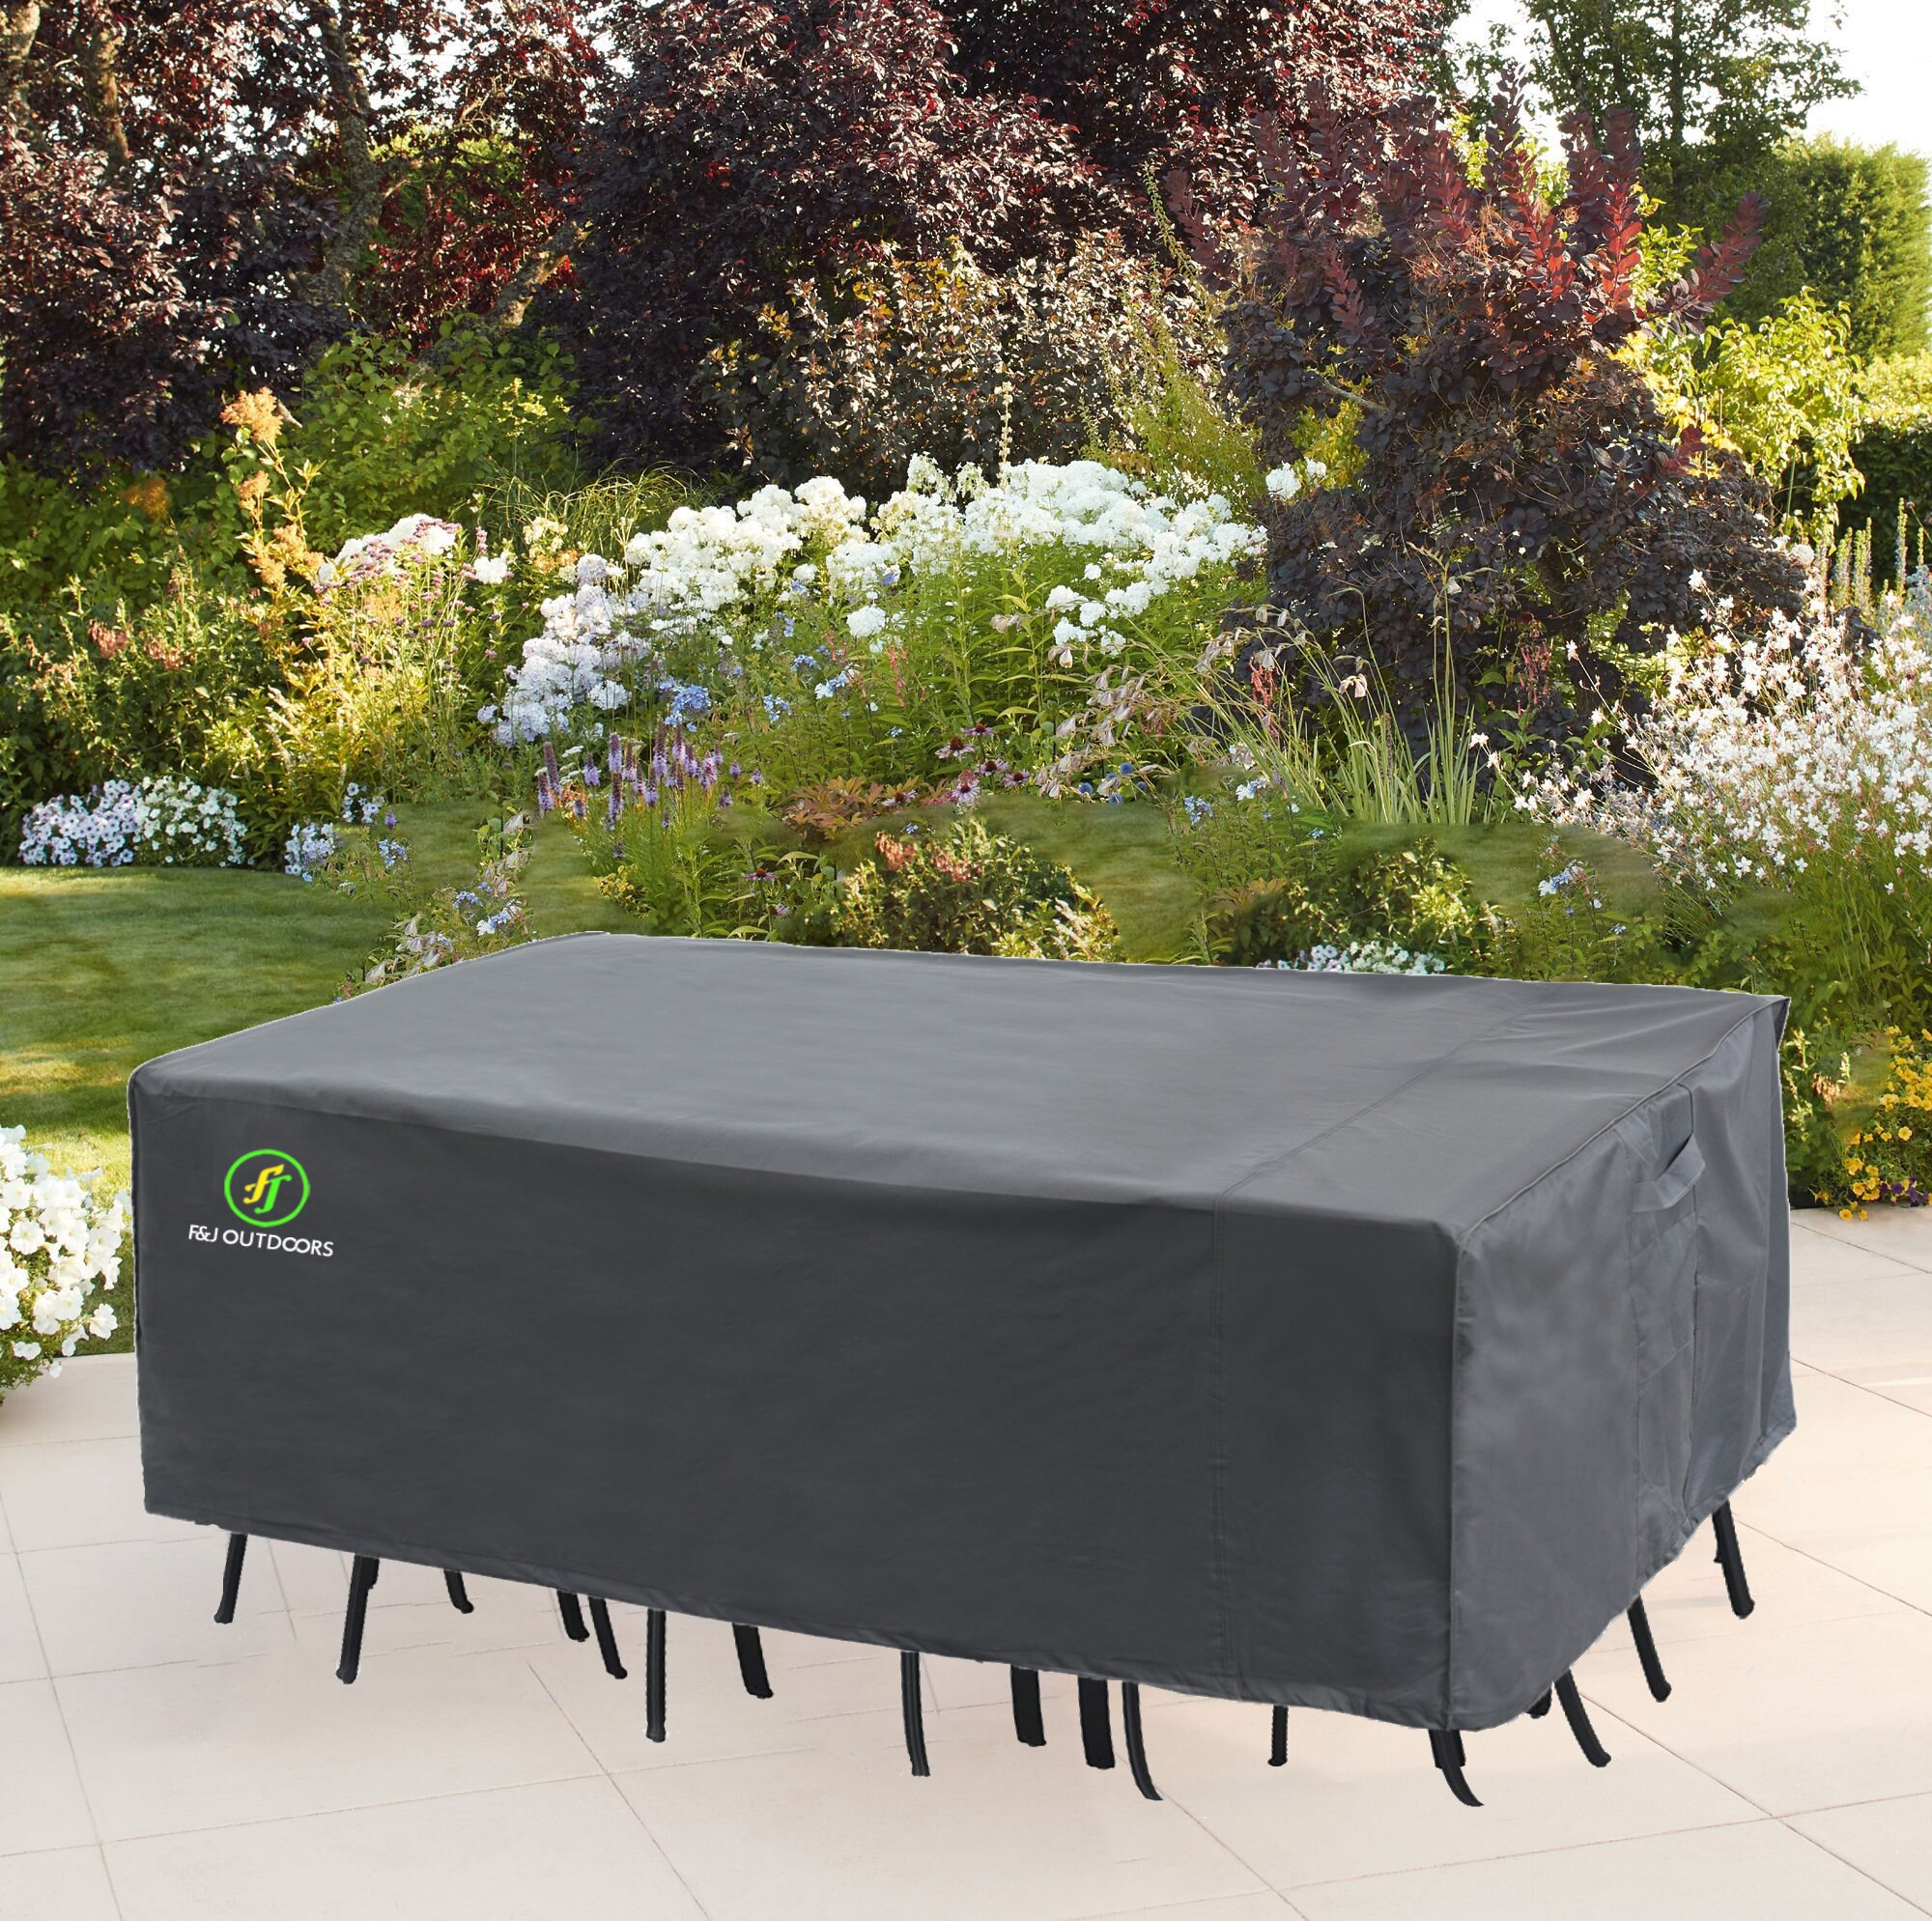 F J Outdoors Water Resistant Patio Dining Set Cover With 2 Year Warranty Reviews Wayfair